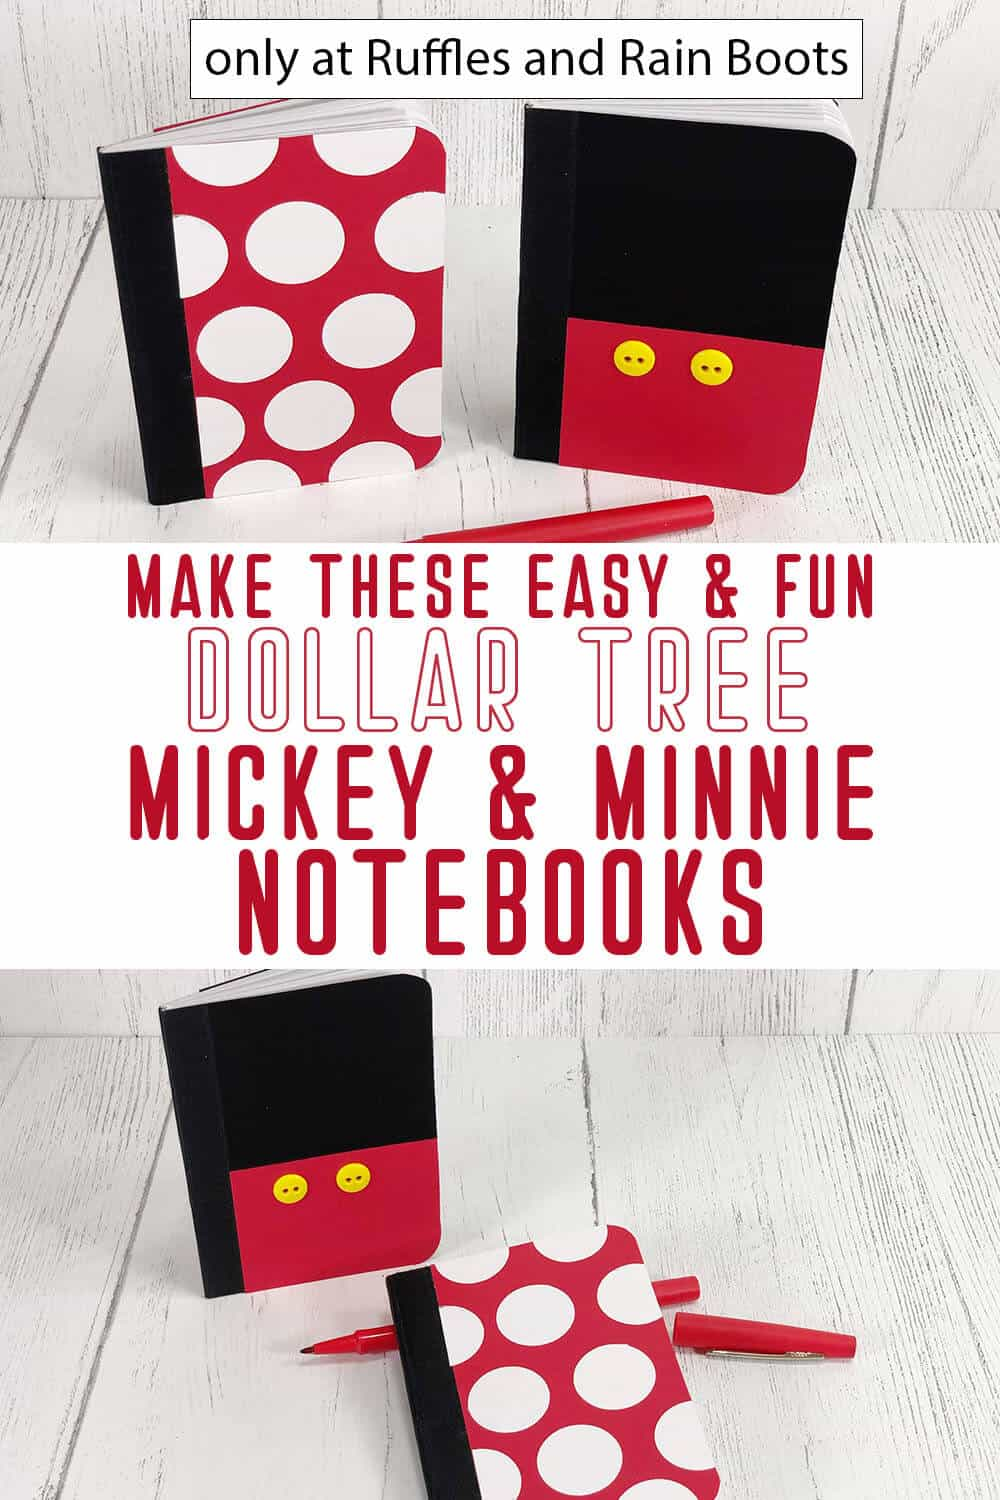 photo collage of diy mickey and minnie notebooks disney craft with text which reads make these easy & fun dollar tree Rickey & minnie notebooks